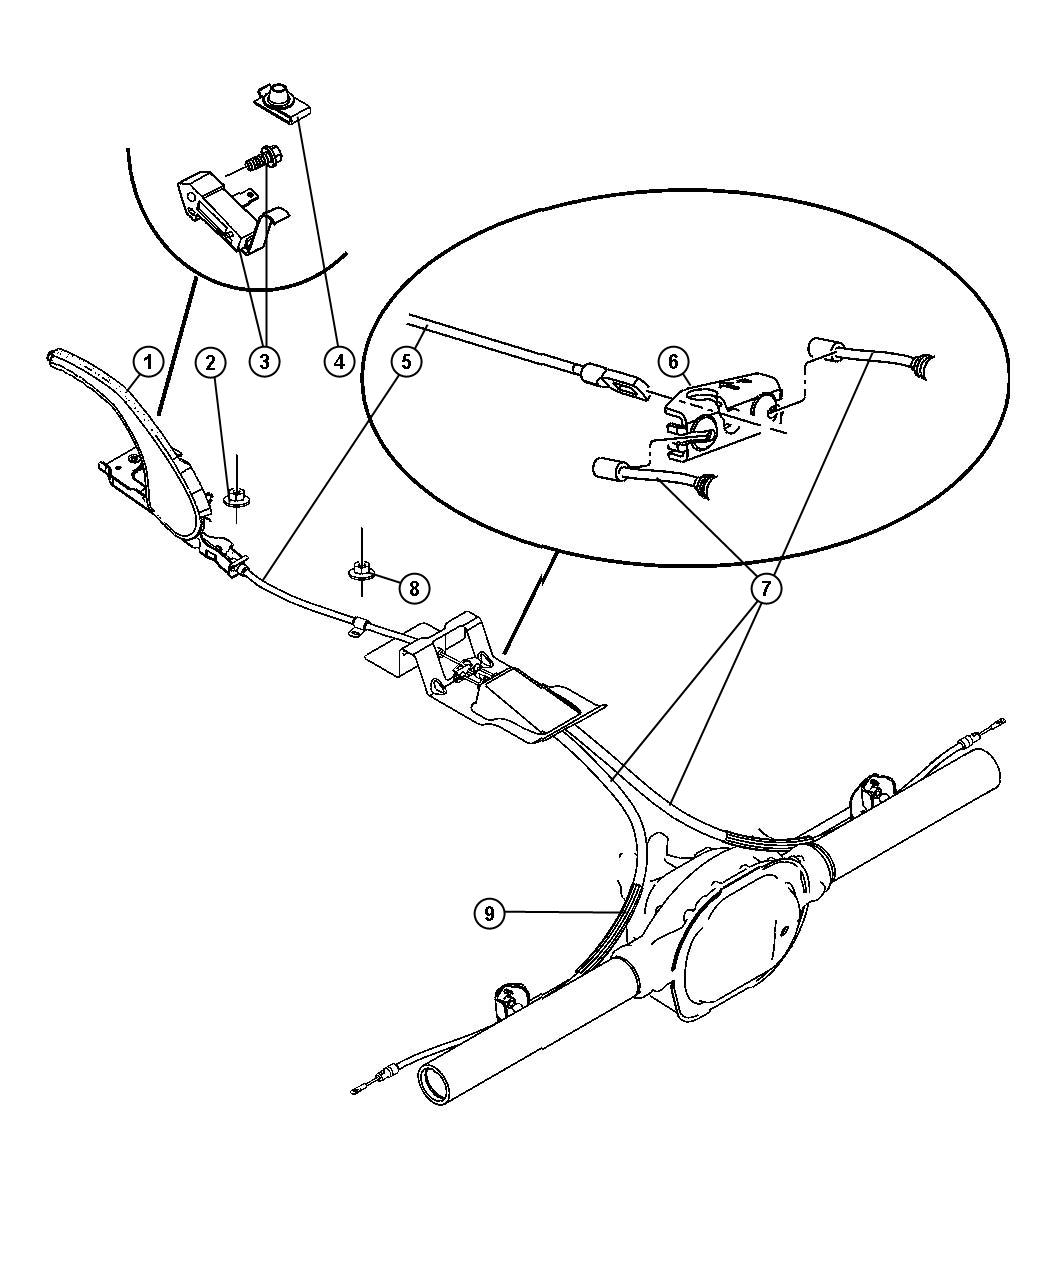 Jeep Grand Cherokee Cable. Parking brake. Front. Series p